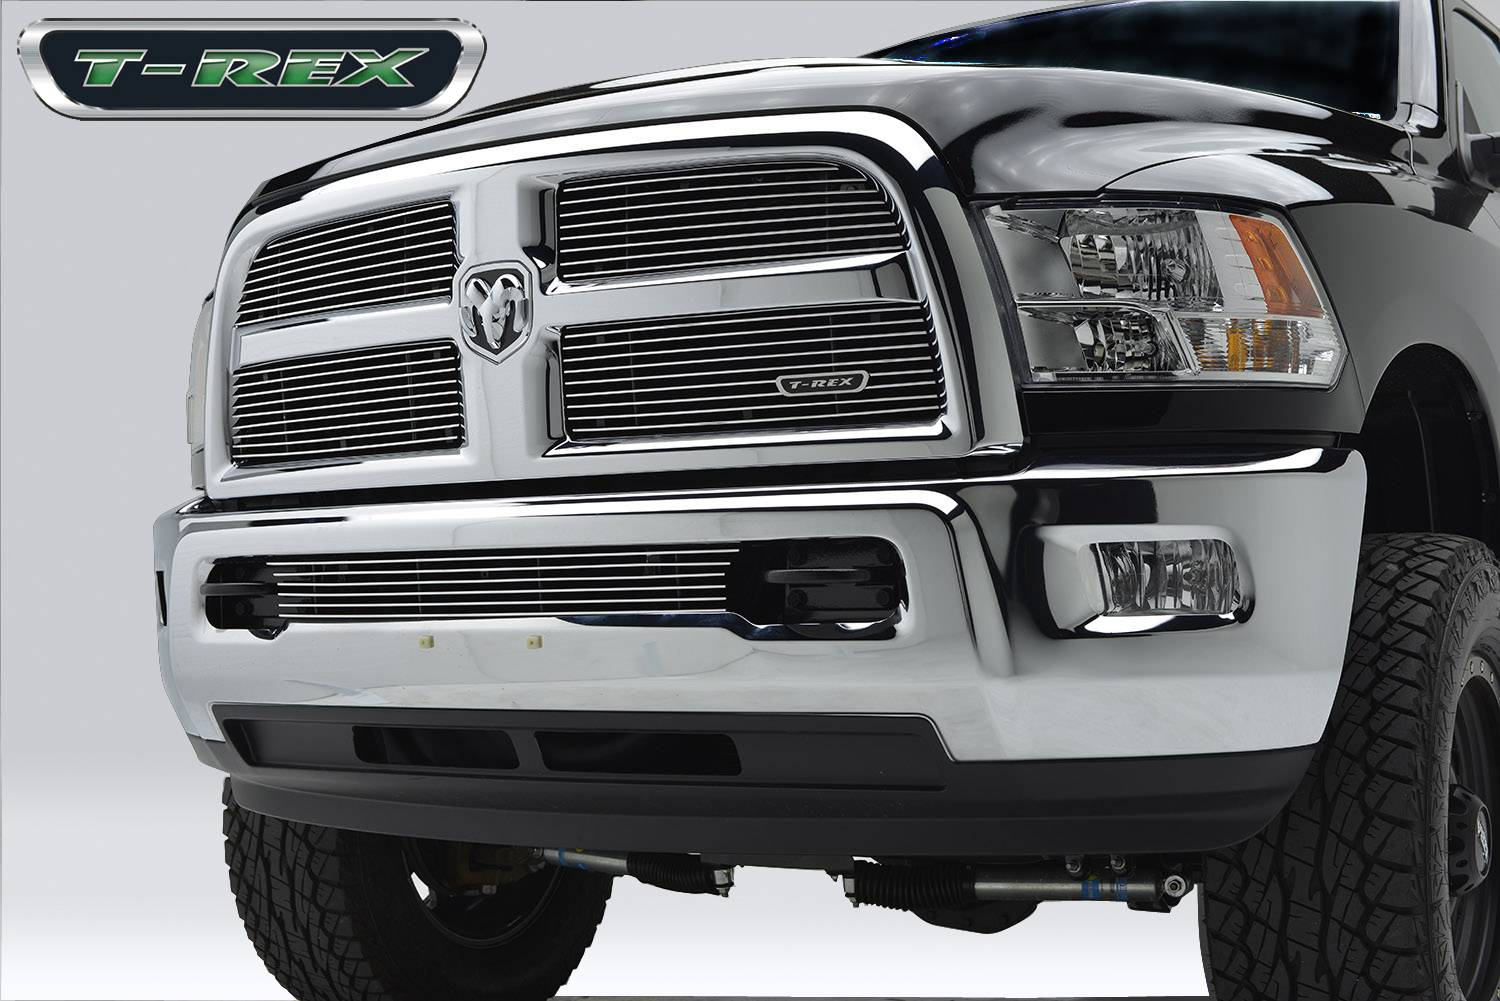 T-REX Ram PU 2500 / 3500 Billet Grille, Main, Replacement, 4 Pc's, Polished Aluminum Bars, Requires replacement of inside chrome - Pt # 21452